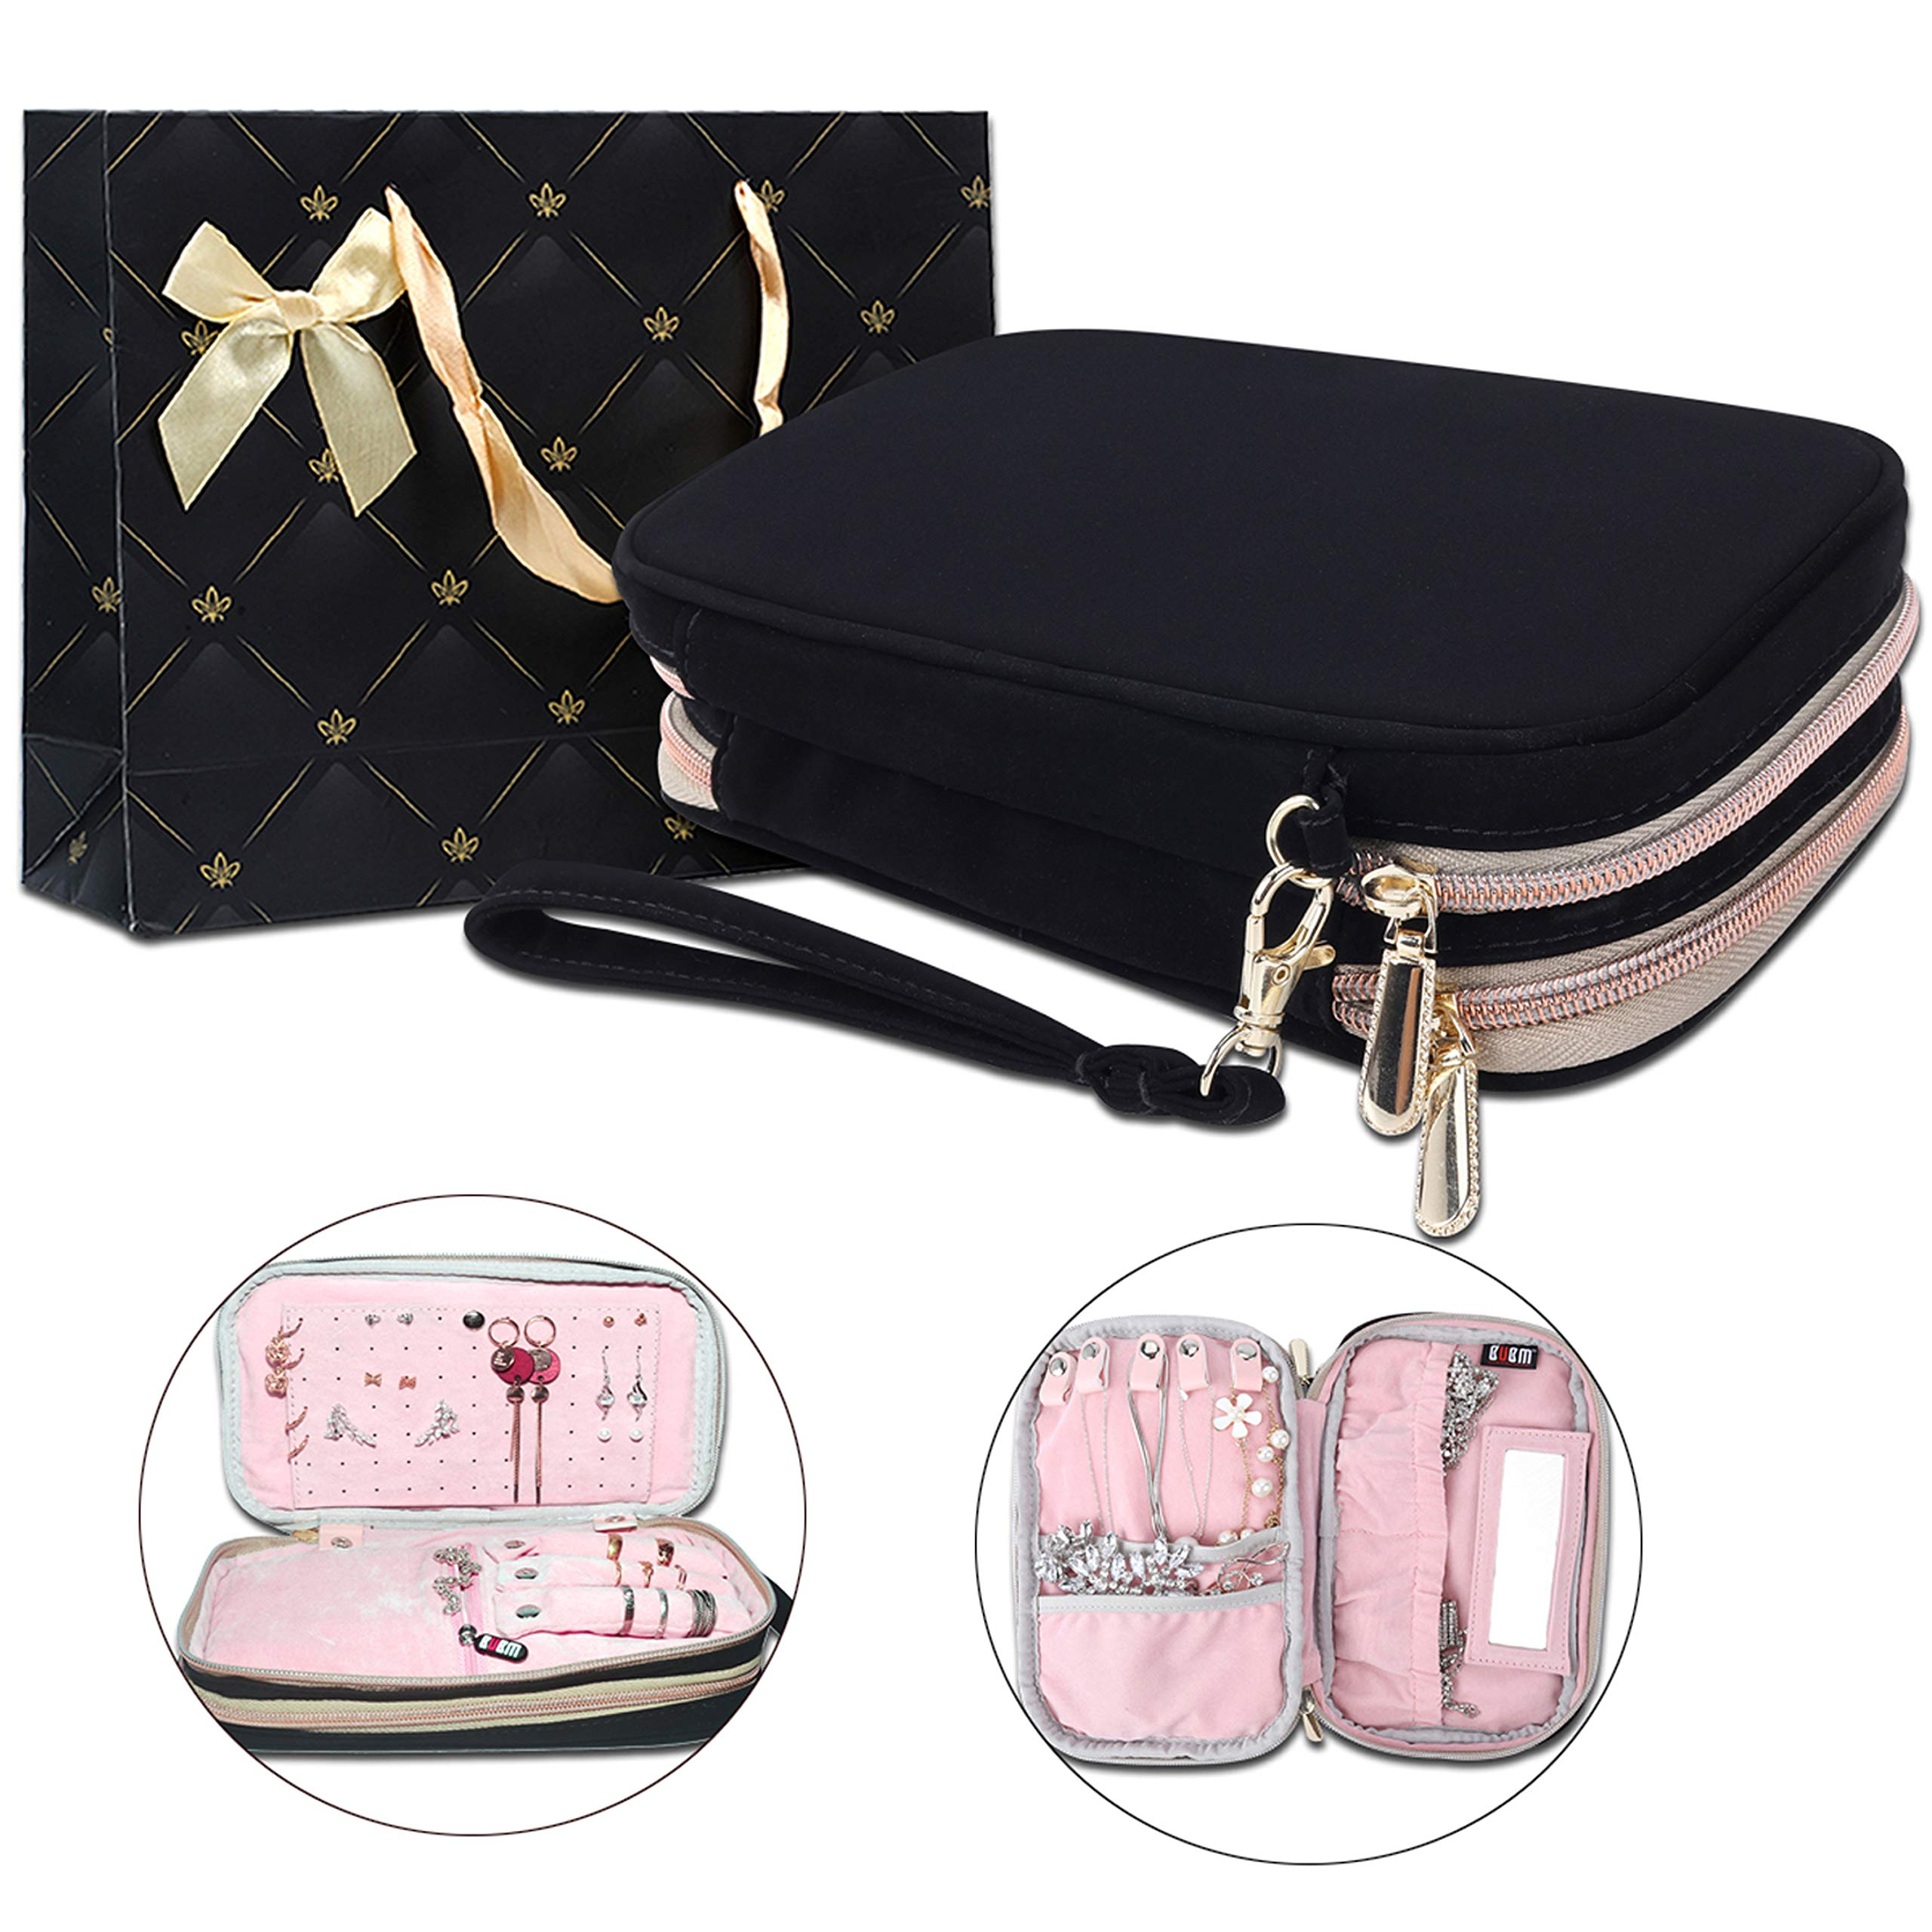 BUBM Double Layer Travel Jewelry Organizer Storage Case Box Handbag for Earrings Necklaces Ring Gift Pack